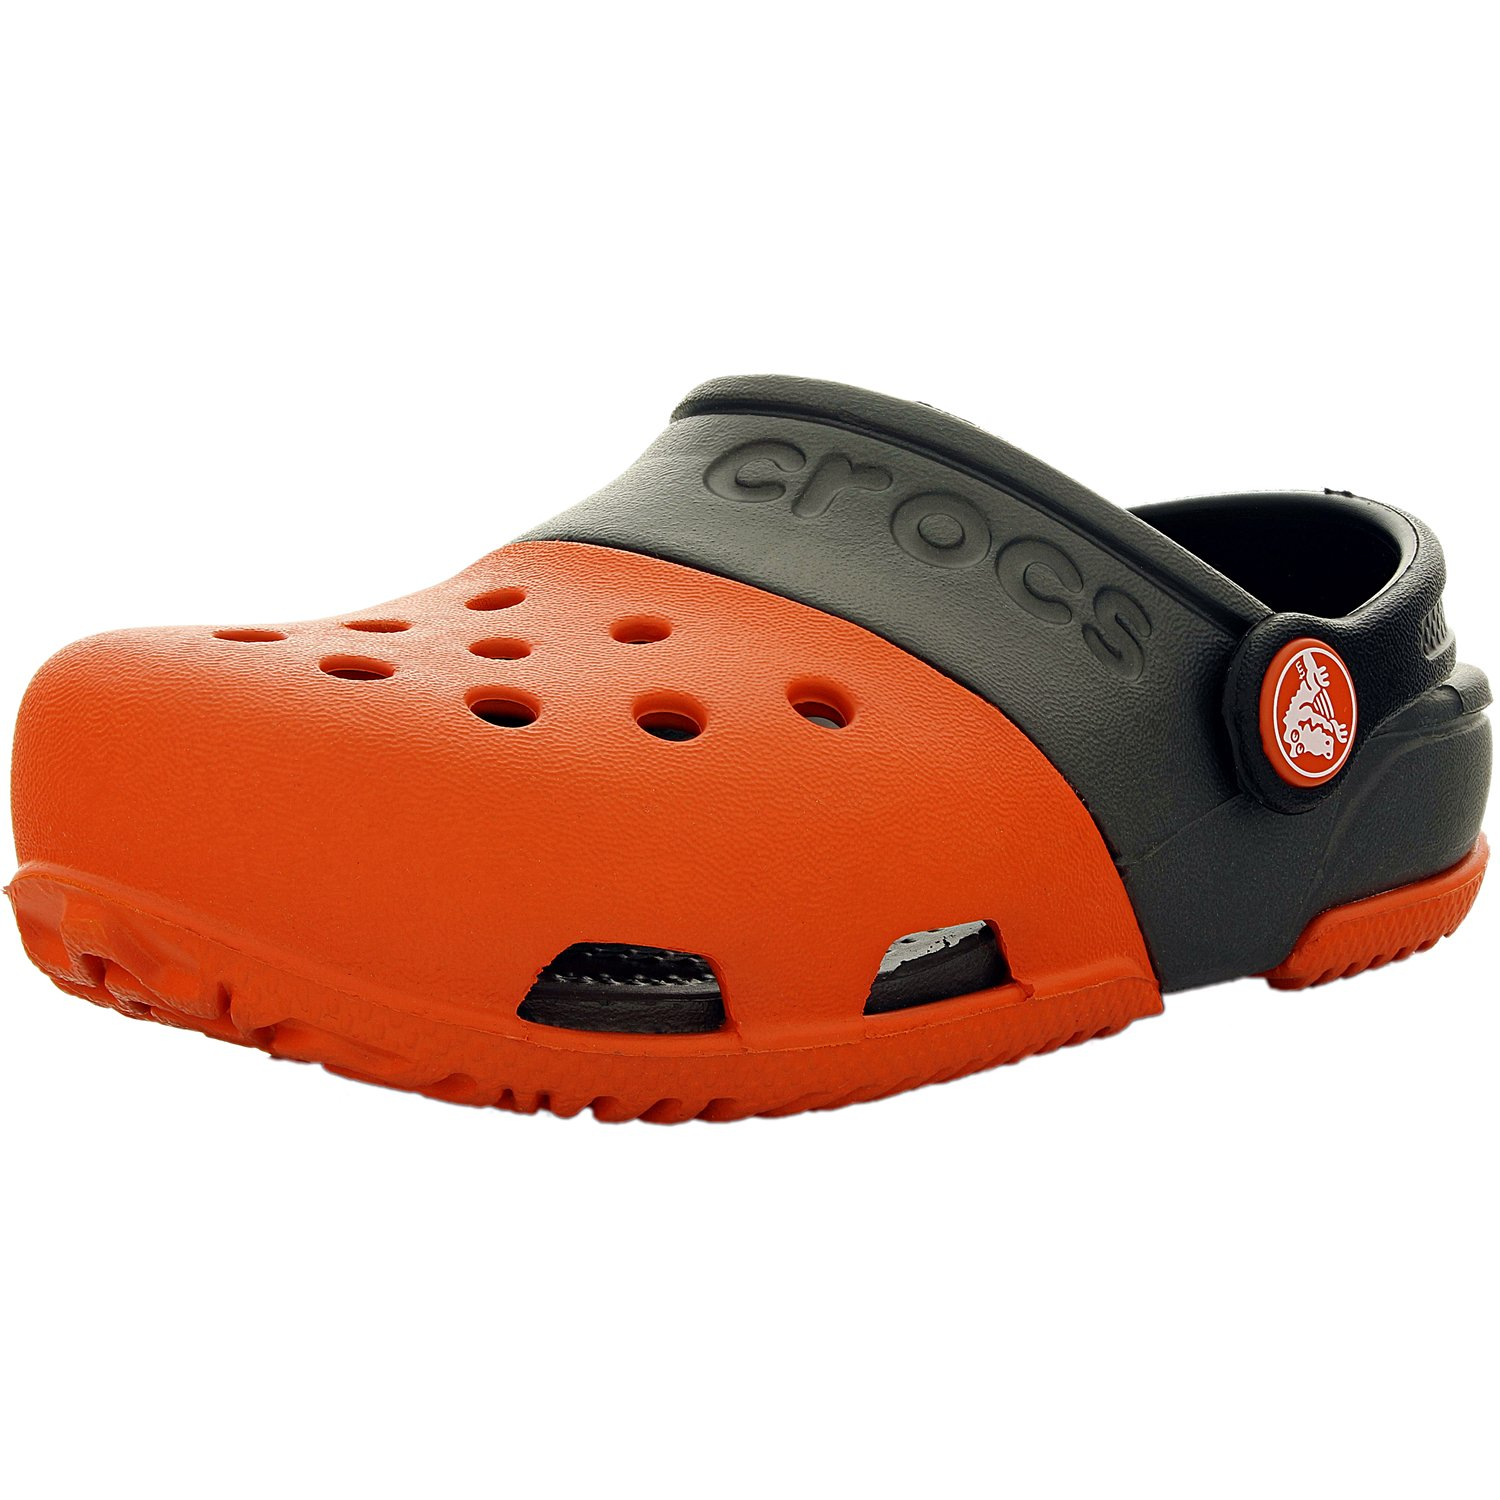 Crocs Boy's Electro Ii Tangerine Graphite Ankle-High Flat Shoe 5M by Crocs